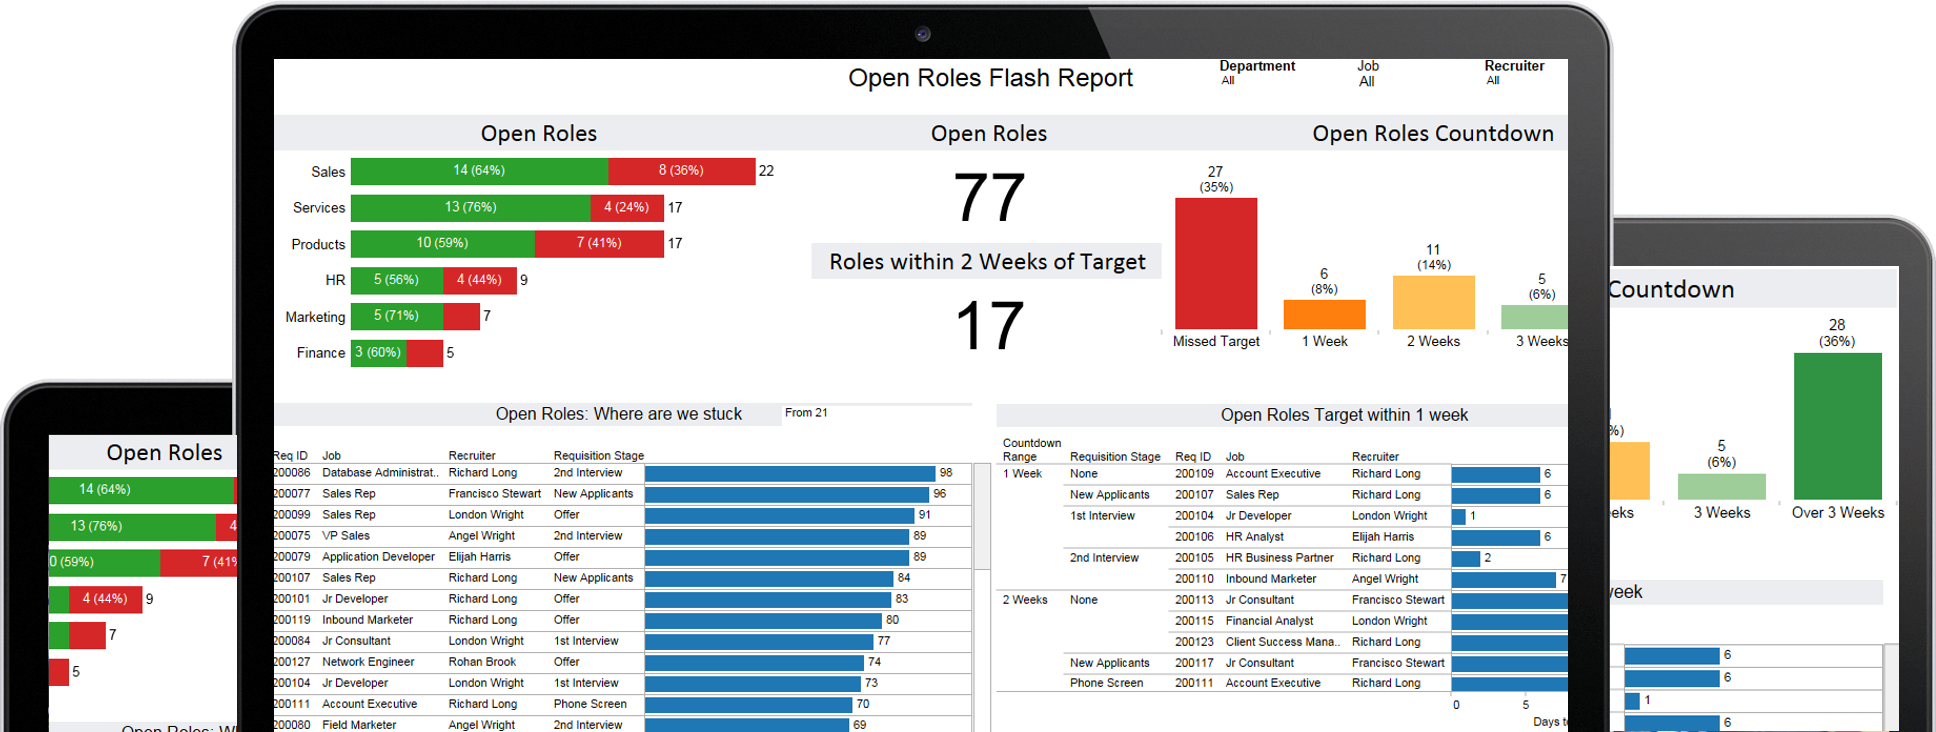 open roles flash report analytics peopleinsight